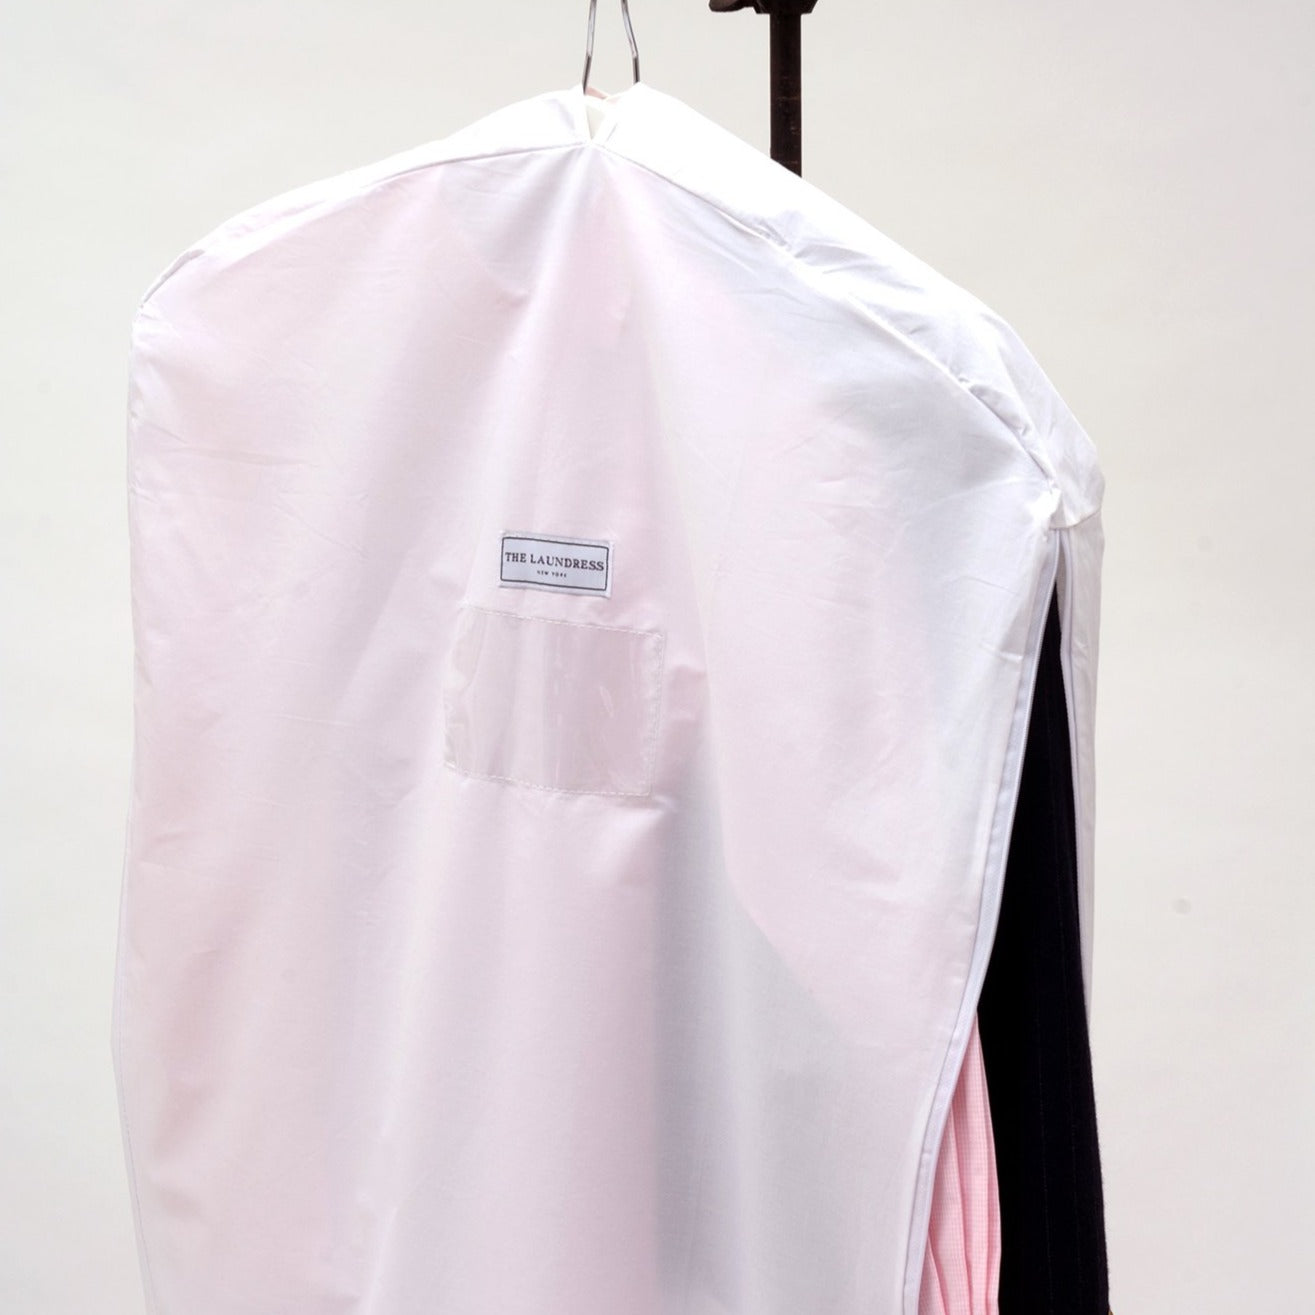 The Laundress Hanging Garment Bag